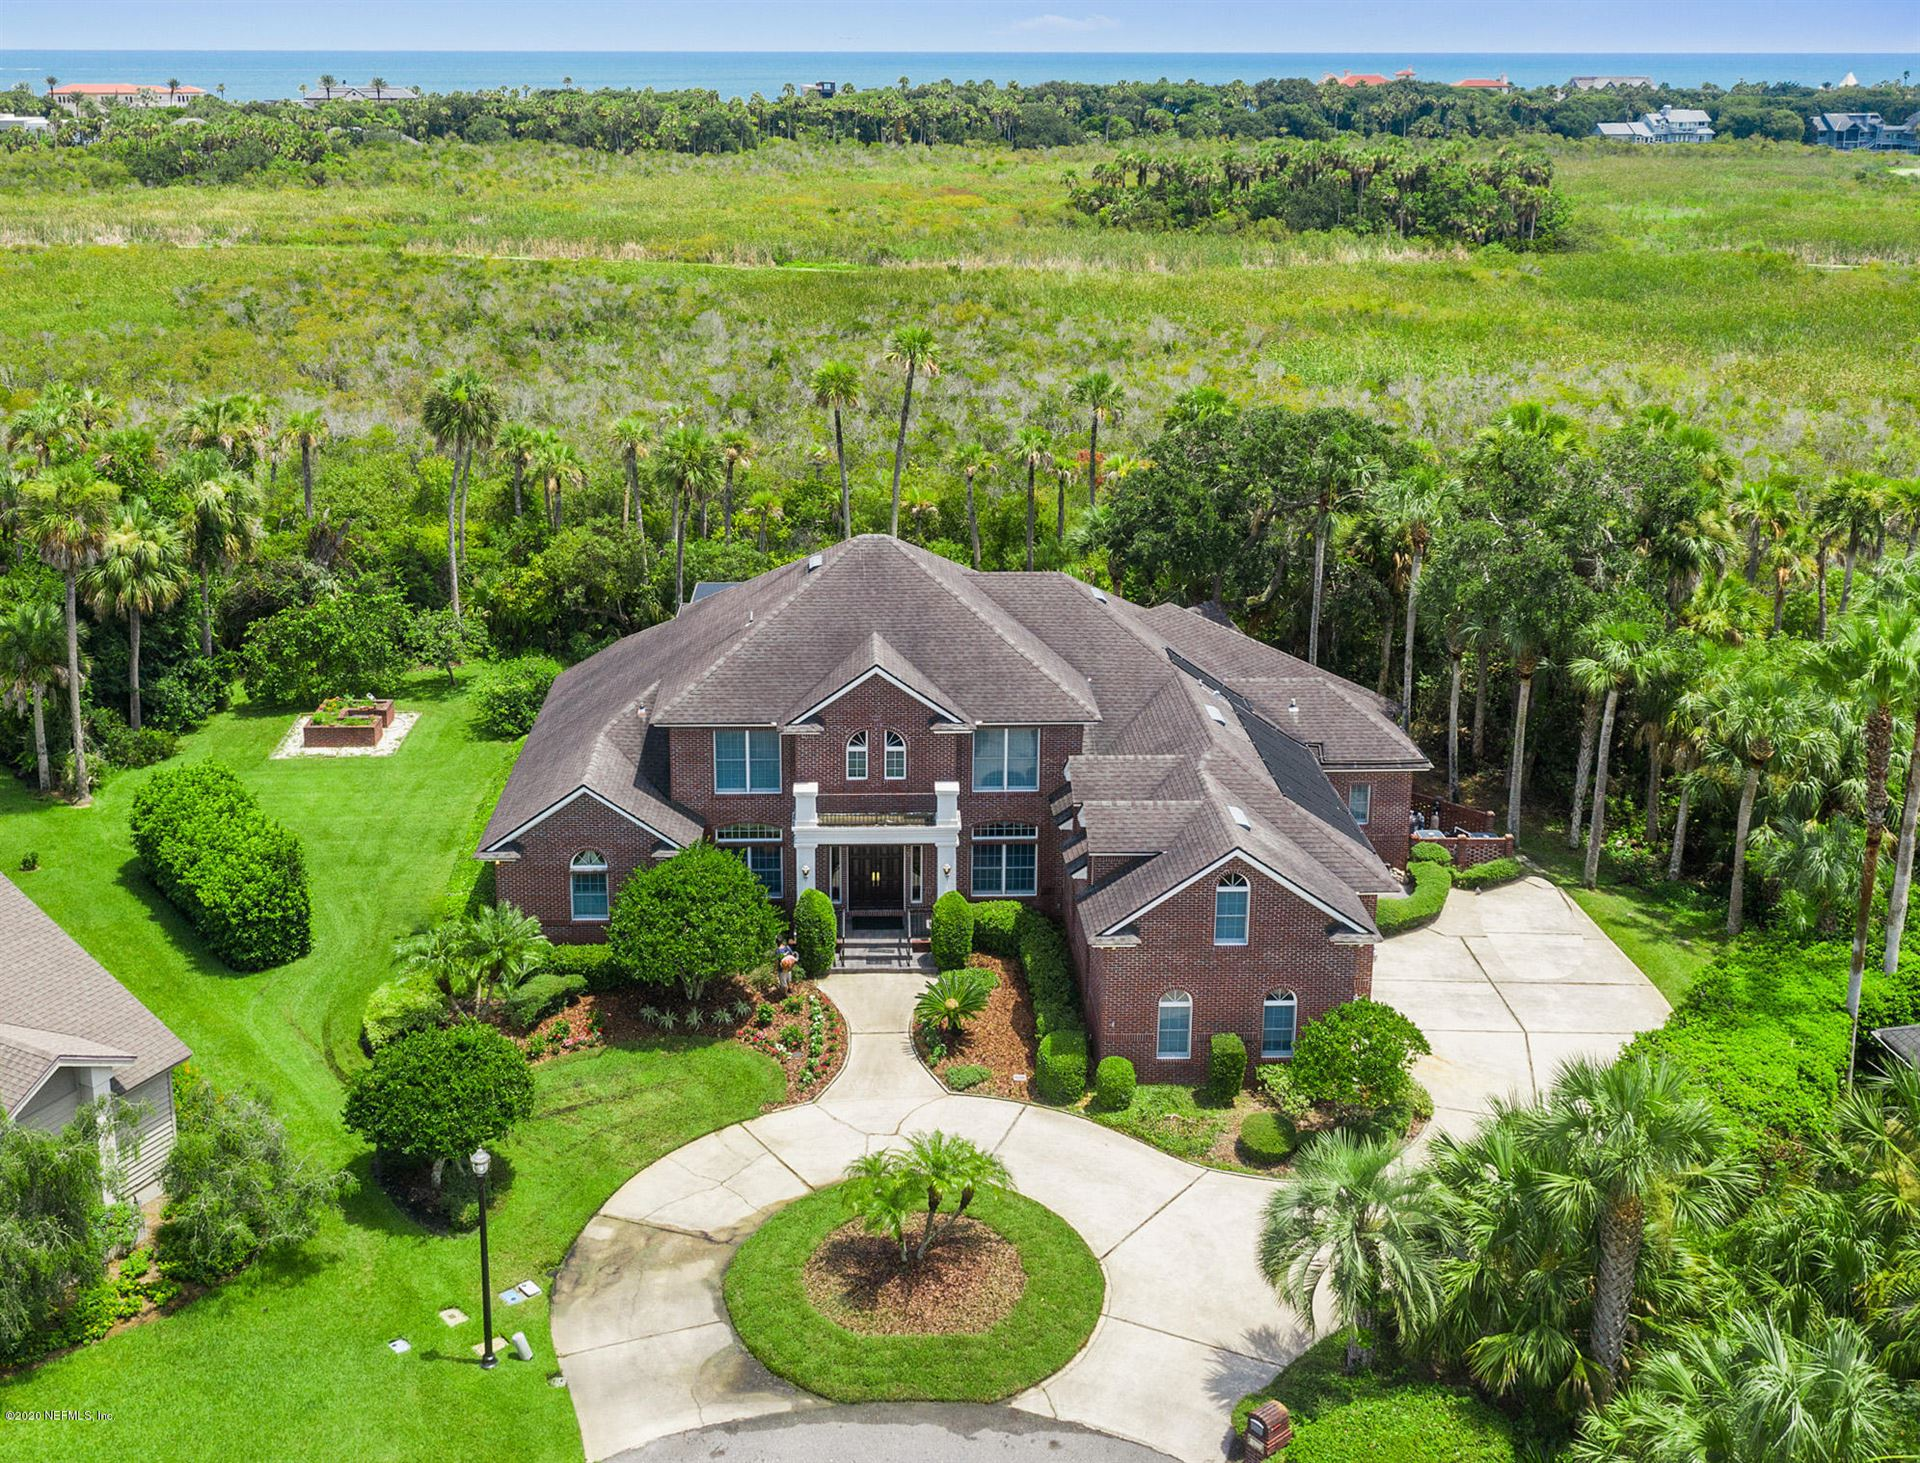 3211 OLD BARN CT, Ponte Vedra Beach, FL 32082 - MLS#: 1068357